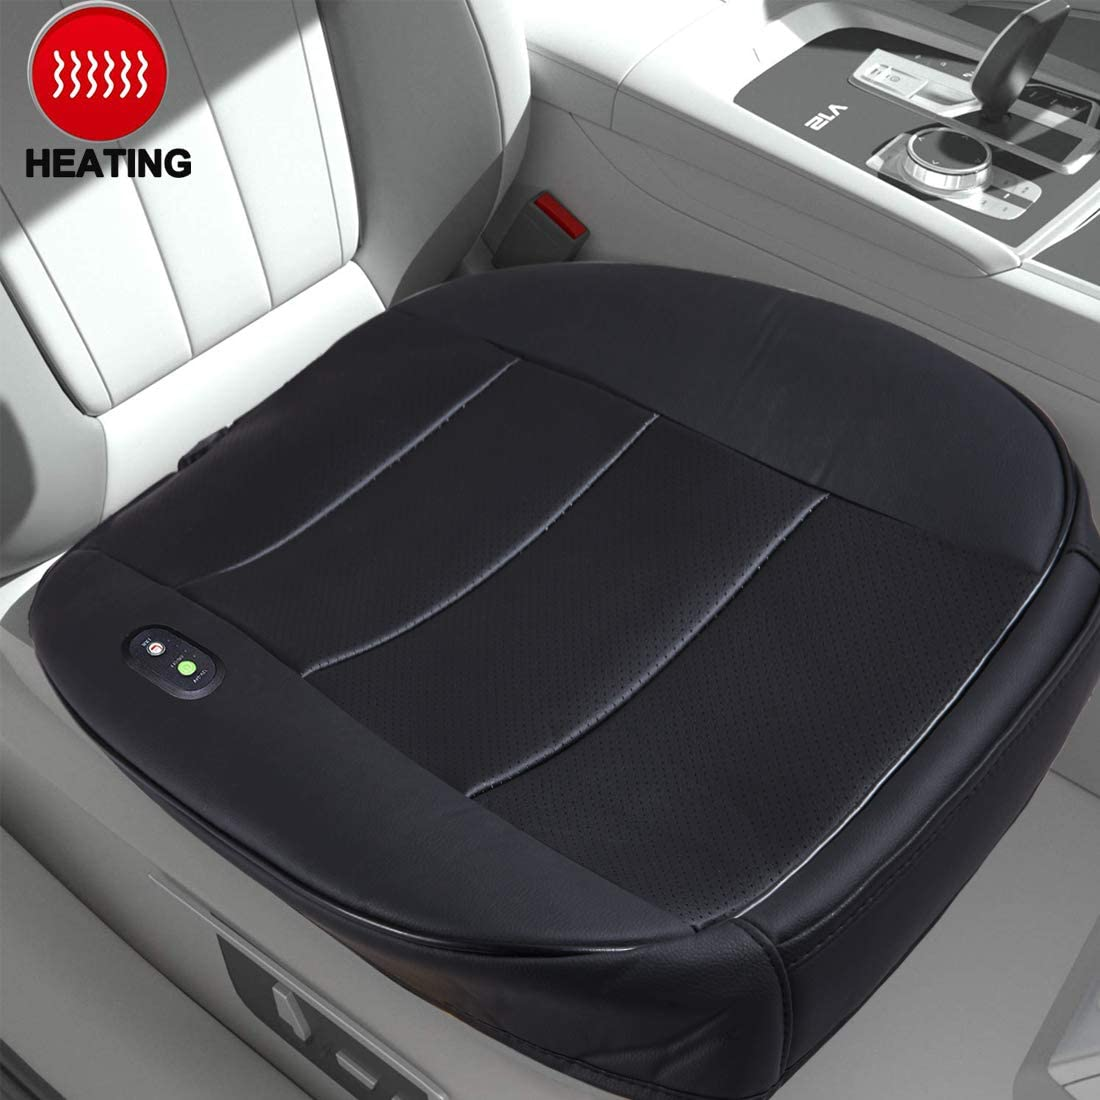 Big Hippo Car Seat Cushion, Edge Wrapping Car Front Seat Bottom Protector Cover Pad Mat with Heating for Auto with PU Leather (Black)